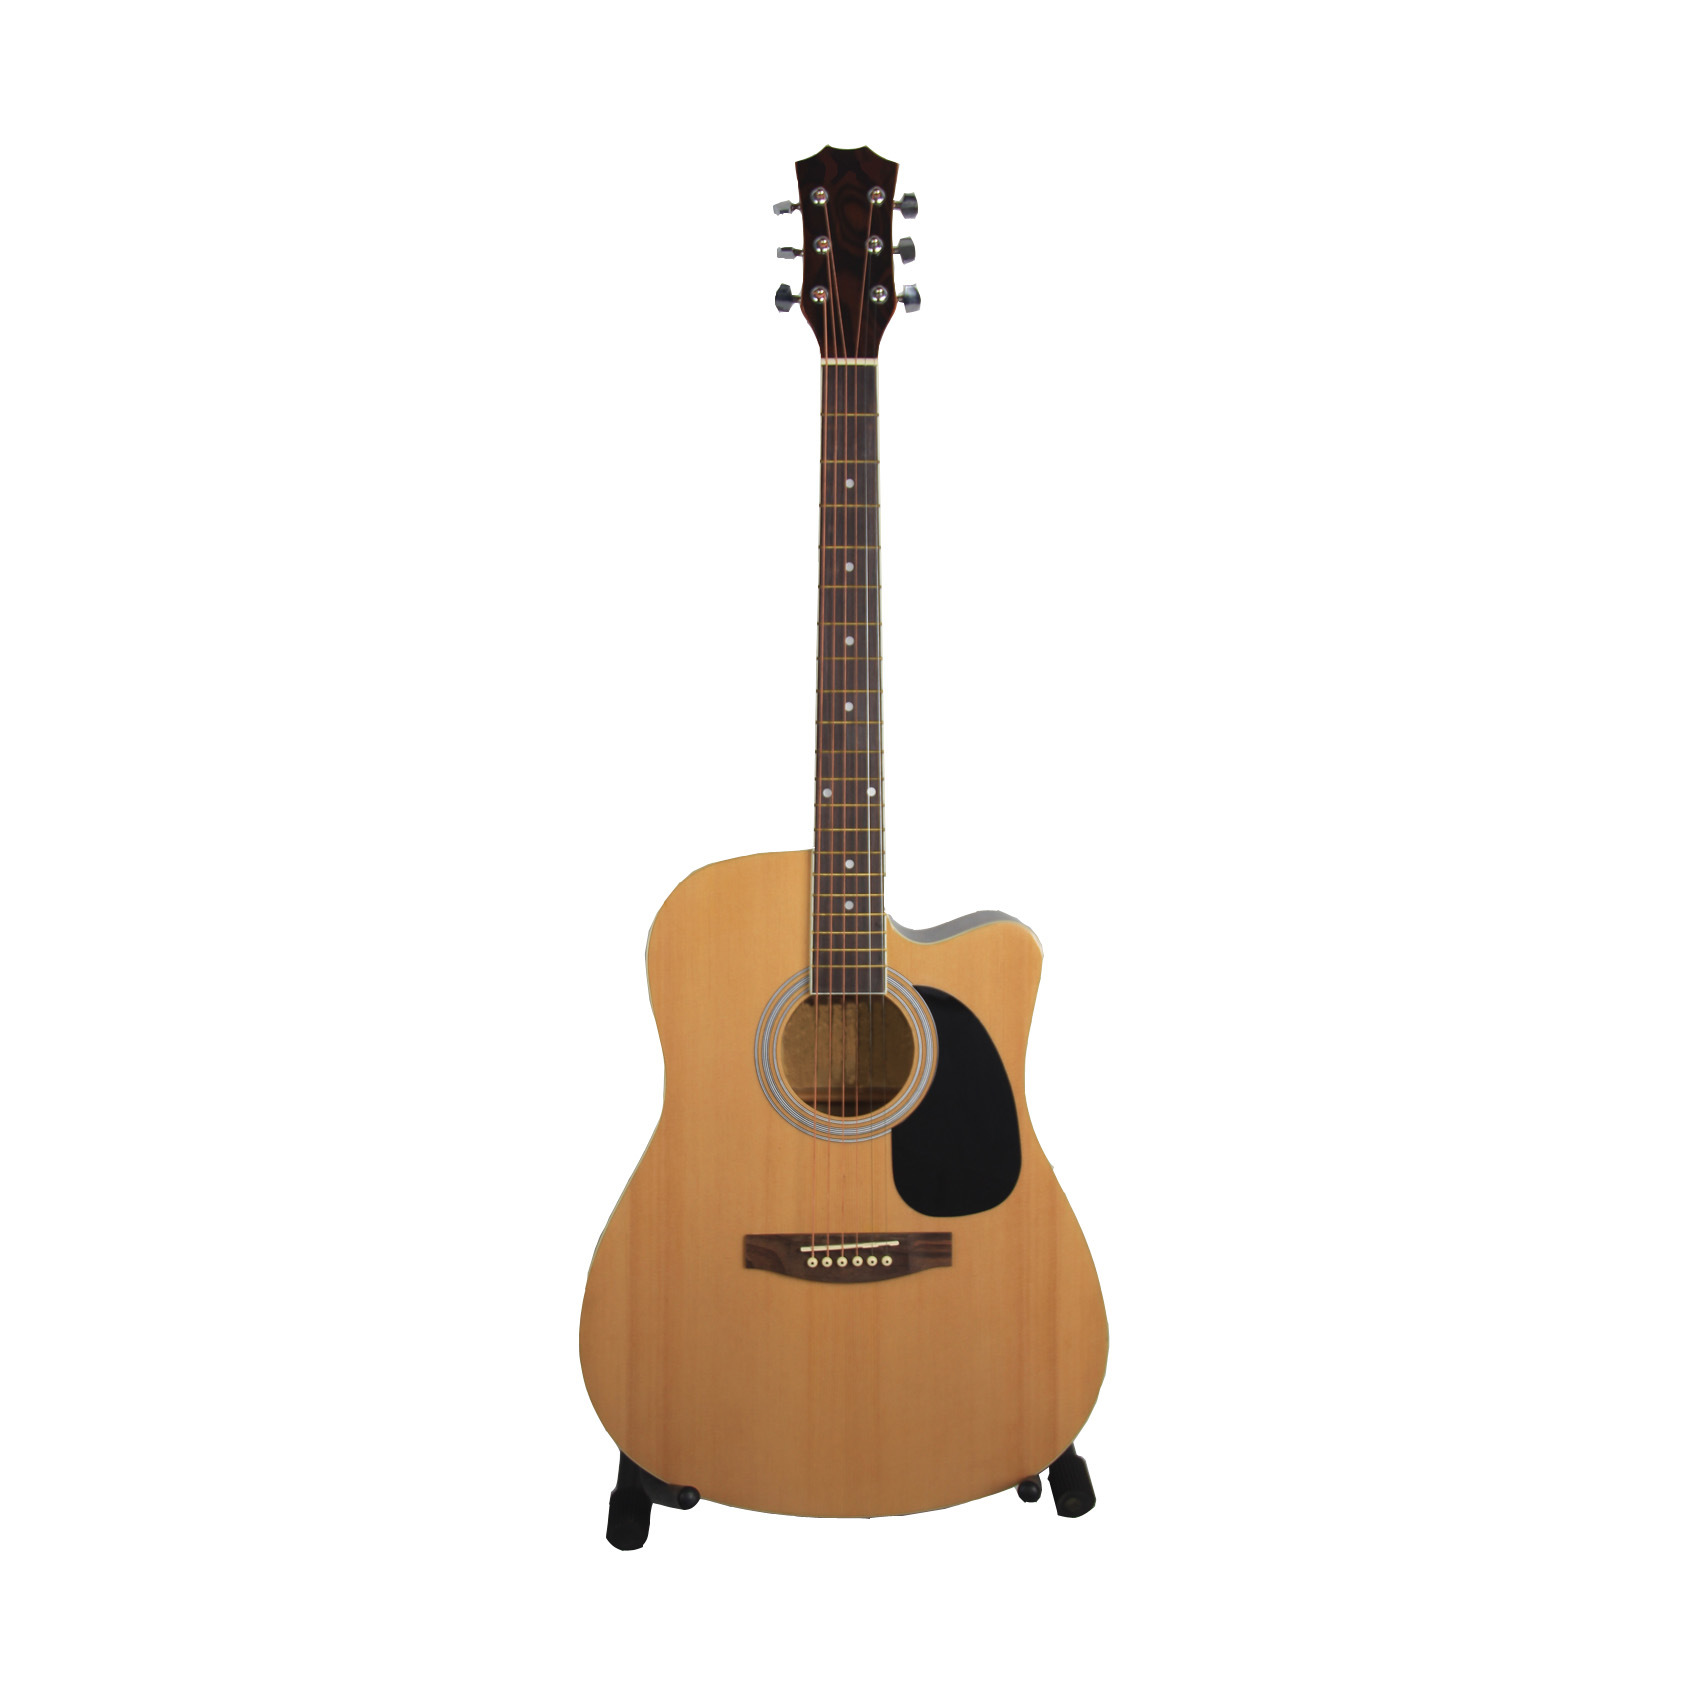 Spruce Bird Maple Pattern Acoustic Guitar (AG-4126C)